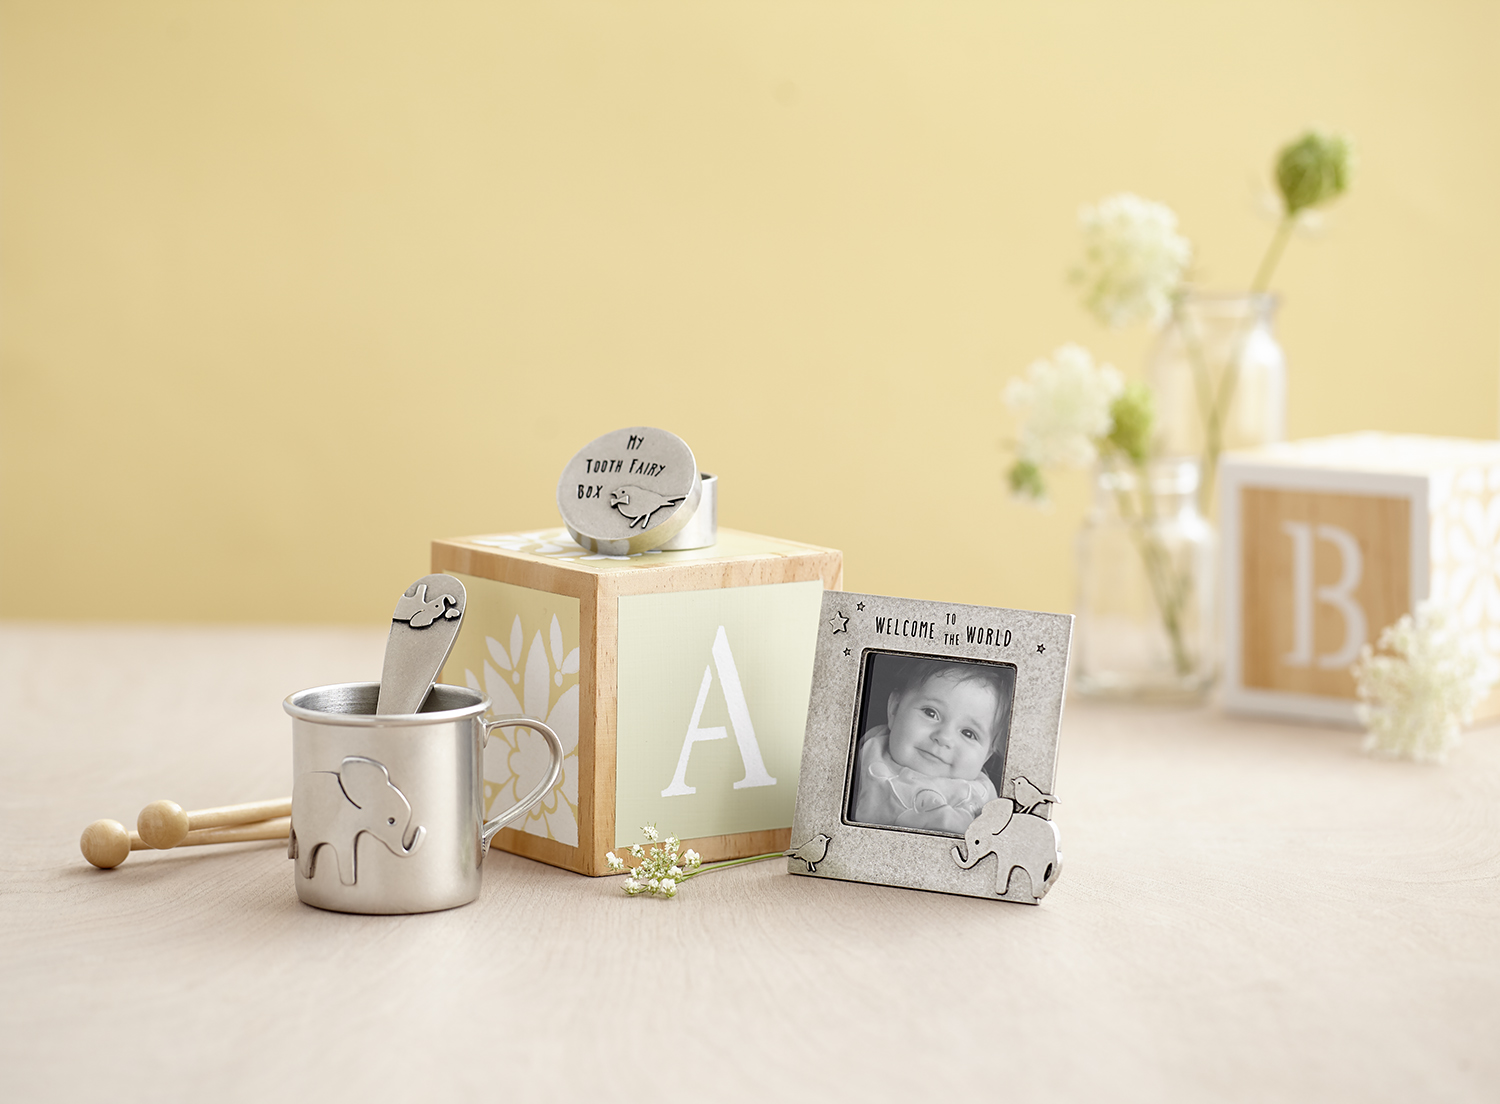 Heirloom baby gifts by Beehive Handmade | Made in Rhode Island - American Made Baby Gifts Under $50